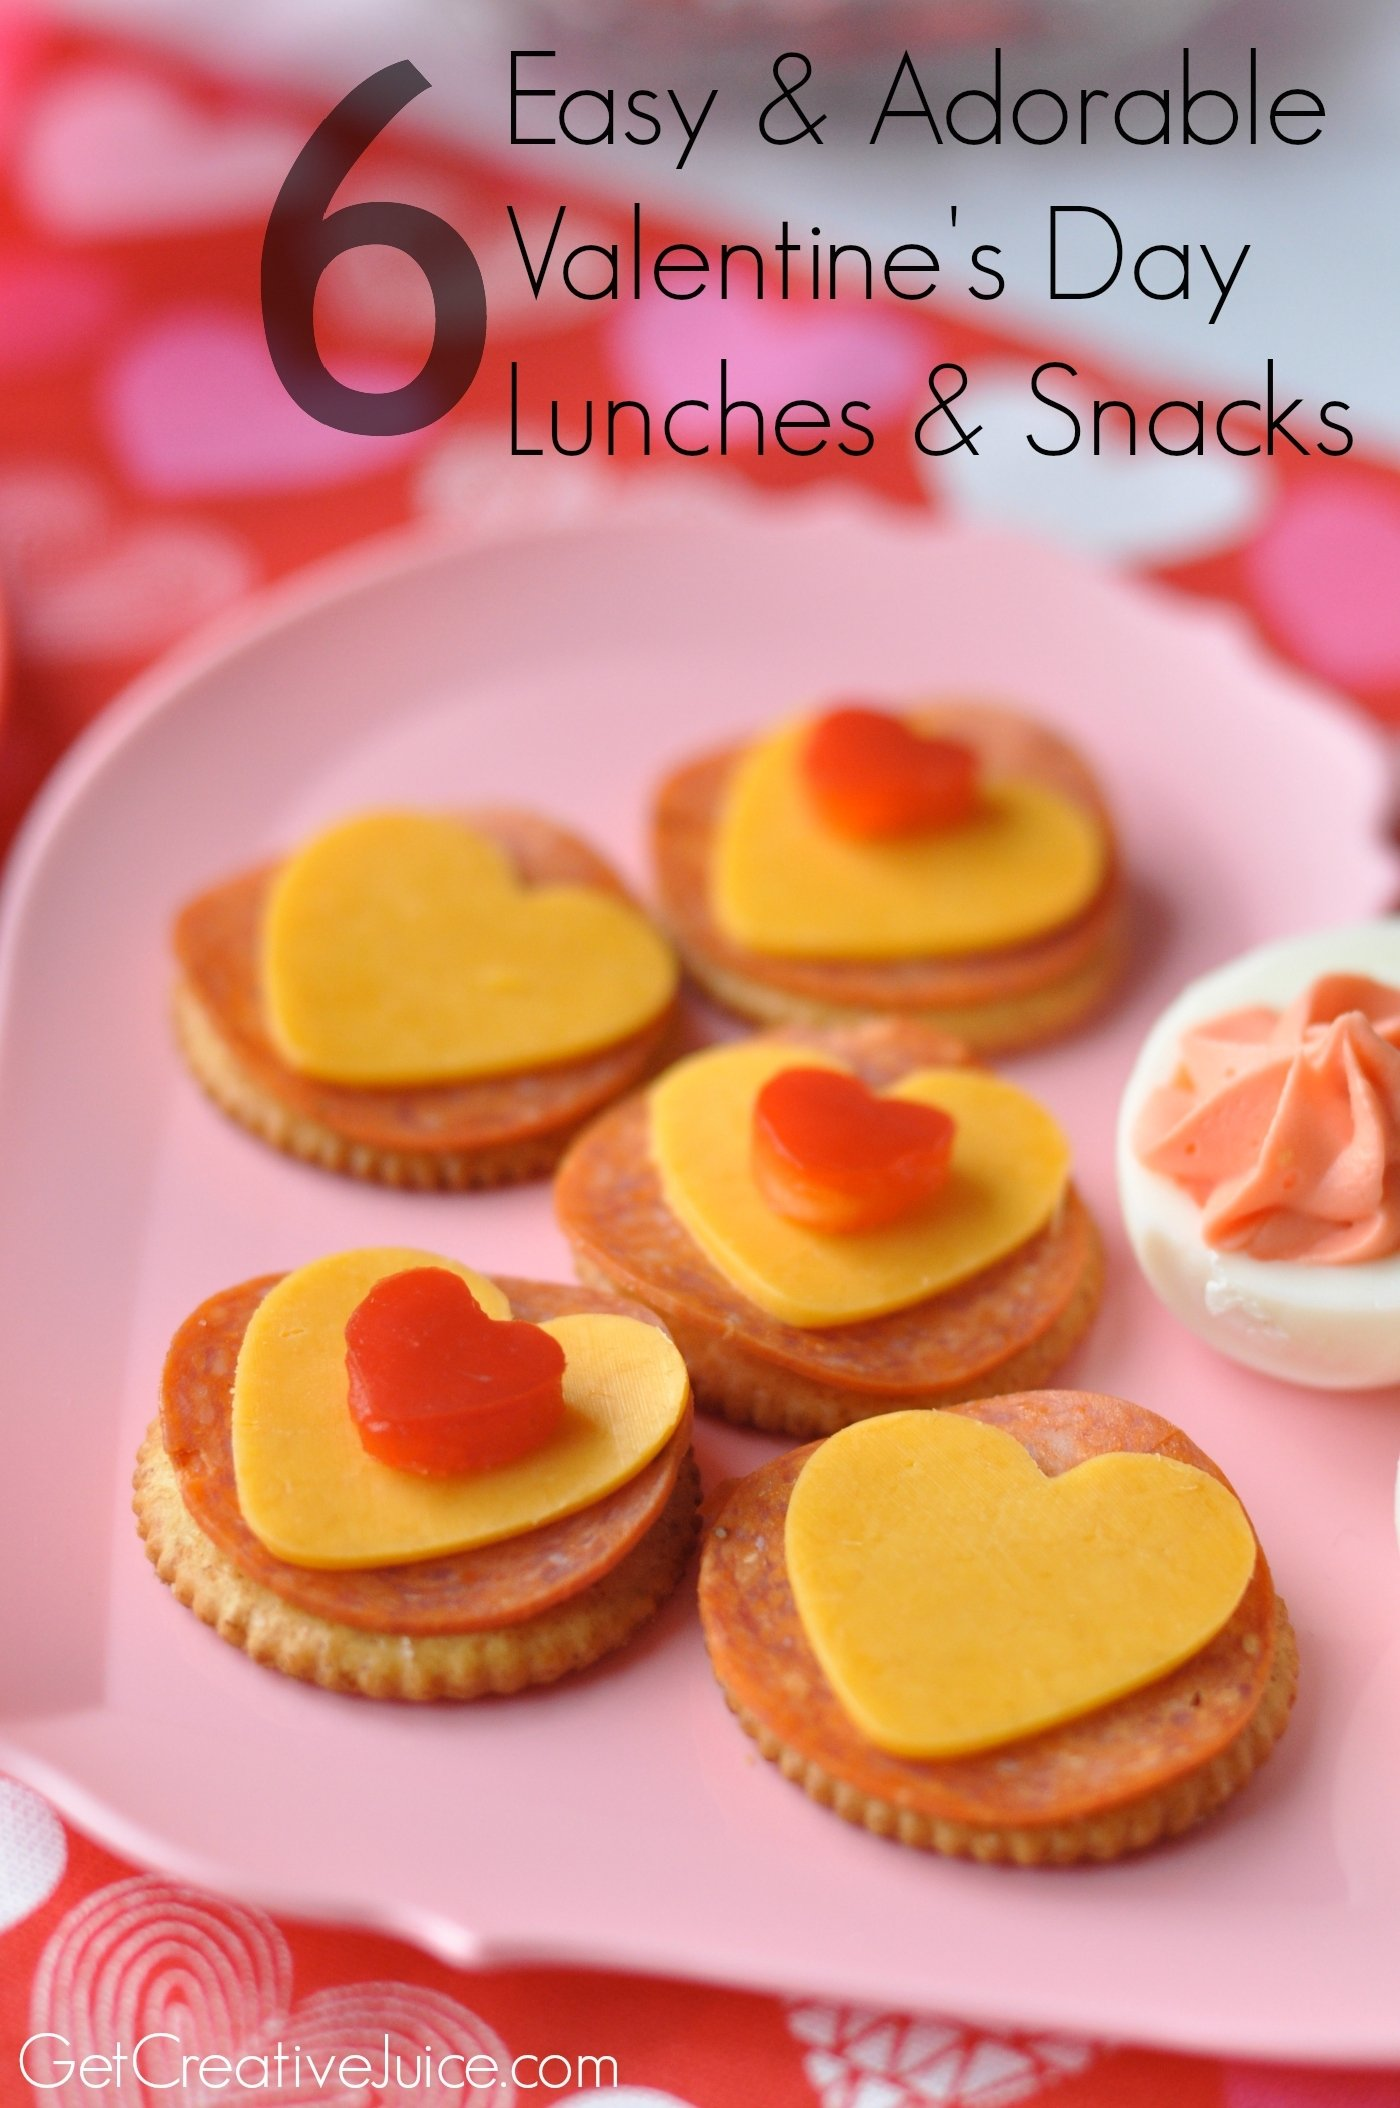 10 Famous Easy Snack Ideas For Kids valentine lunch ideas and snack ideas creative juice 3 2020